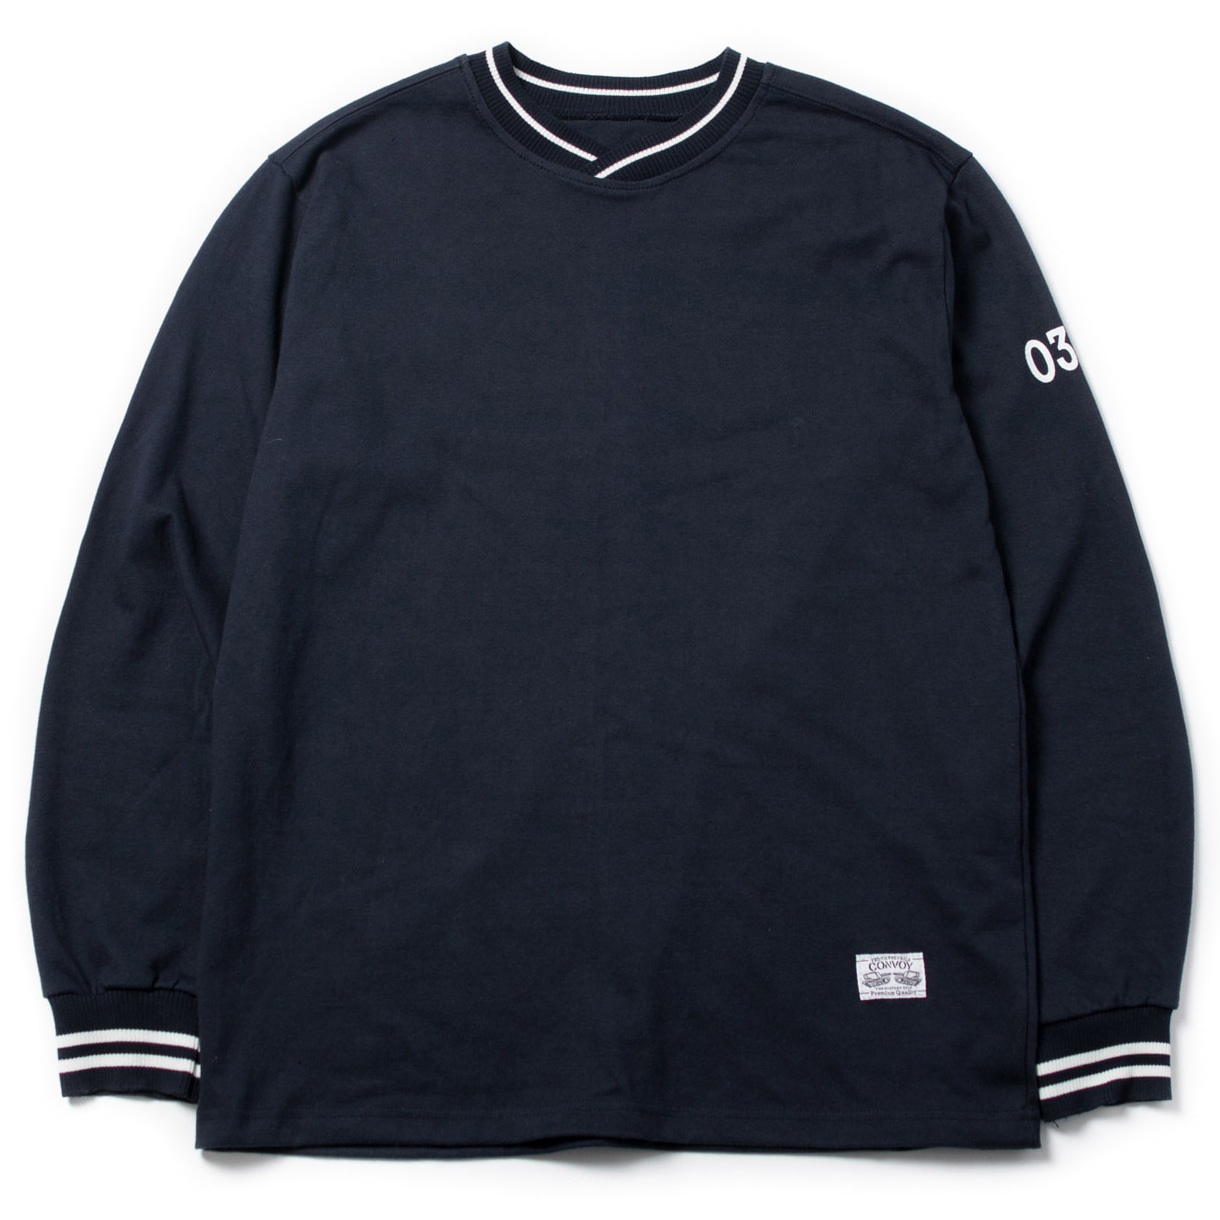 [콘보이] 03 Shawl Collar t-shirt navy